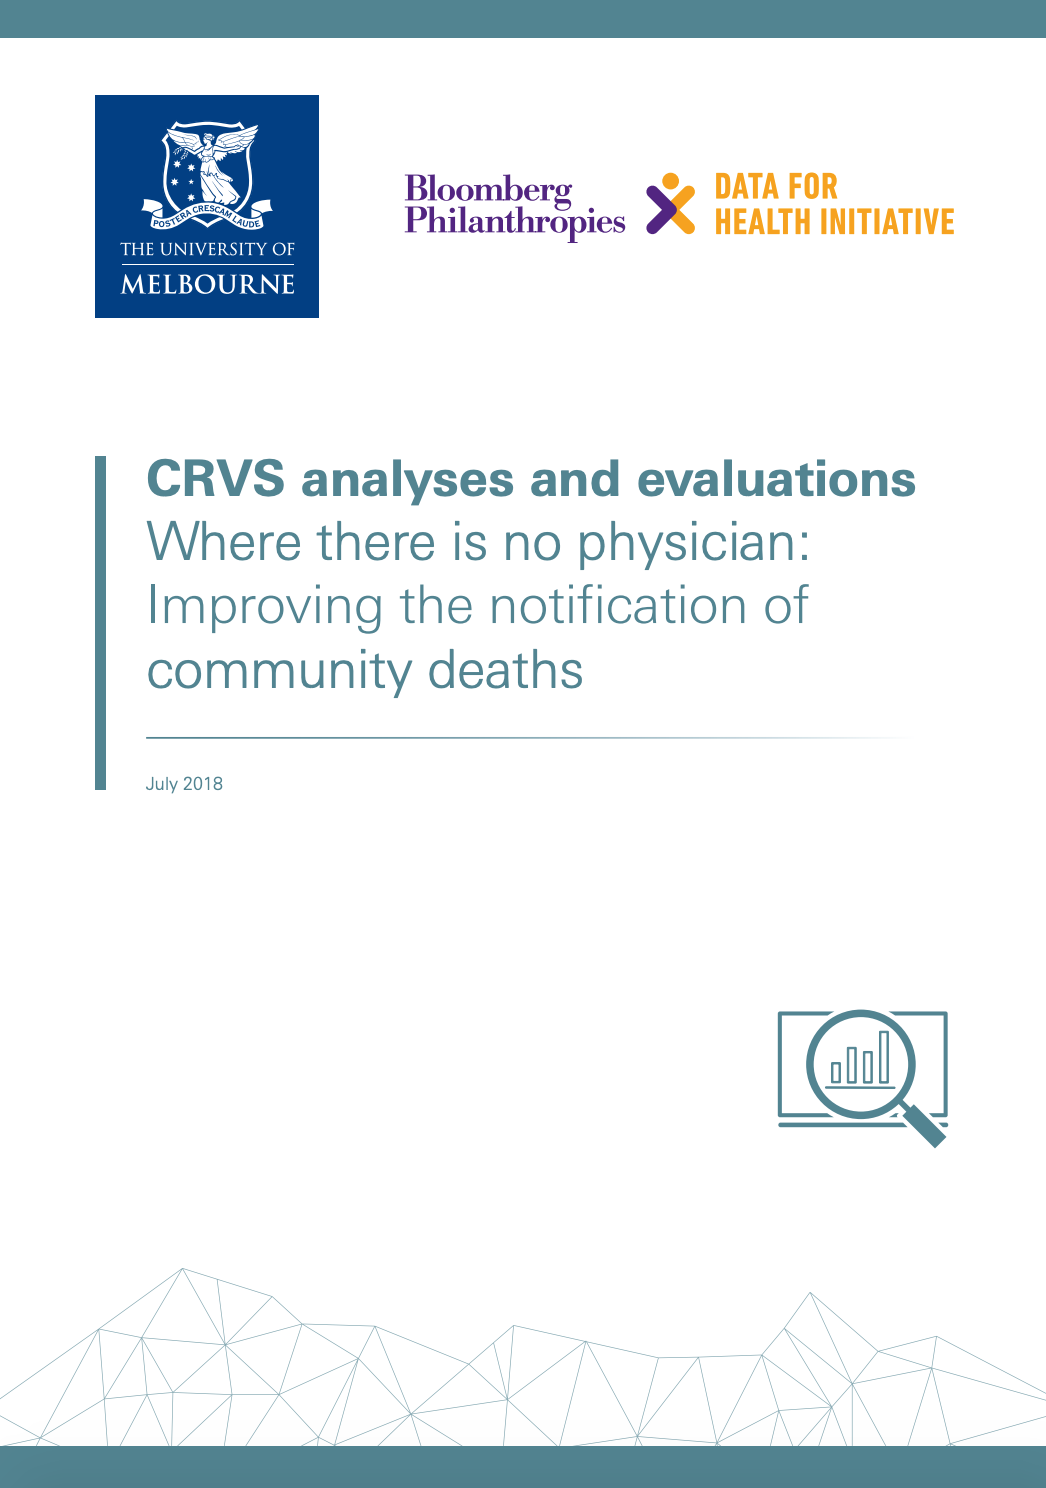 CRVS analyses and evaluations